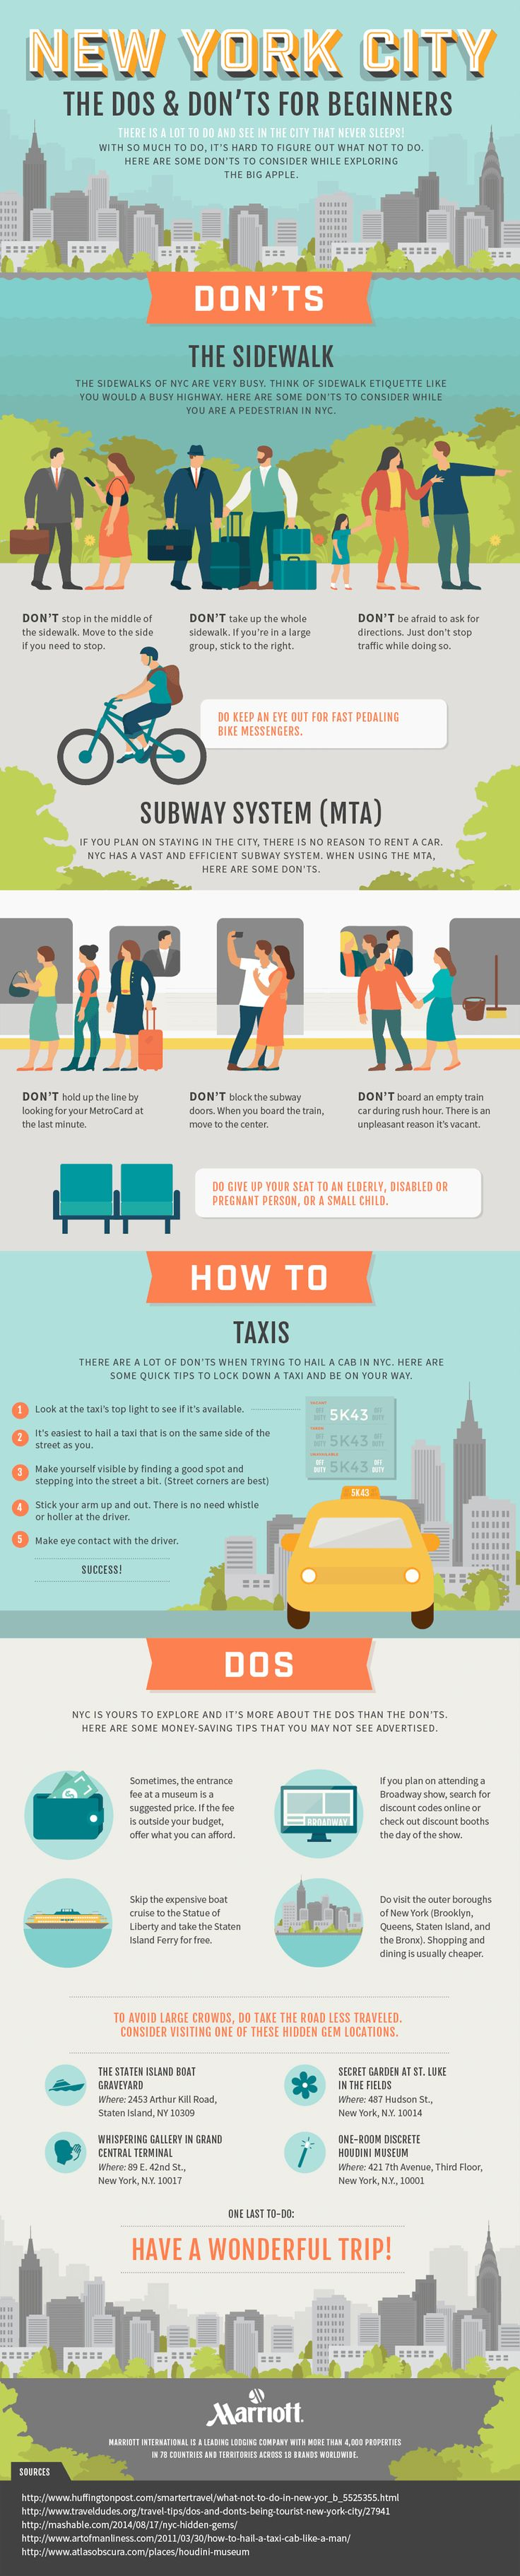 New York City Travel Guide Do's And Don'ts